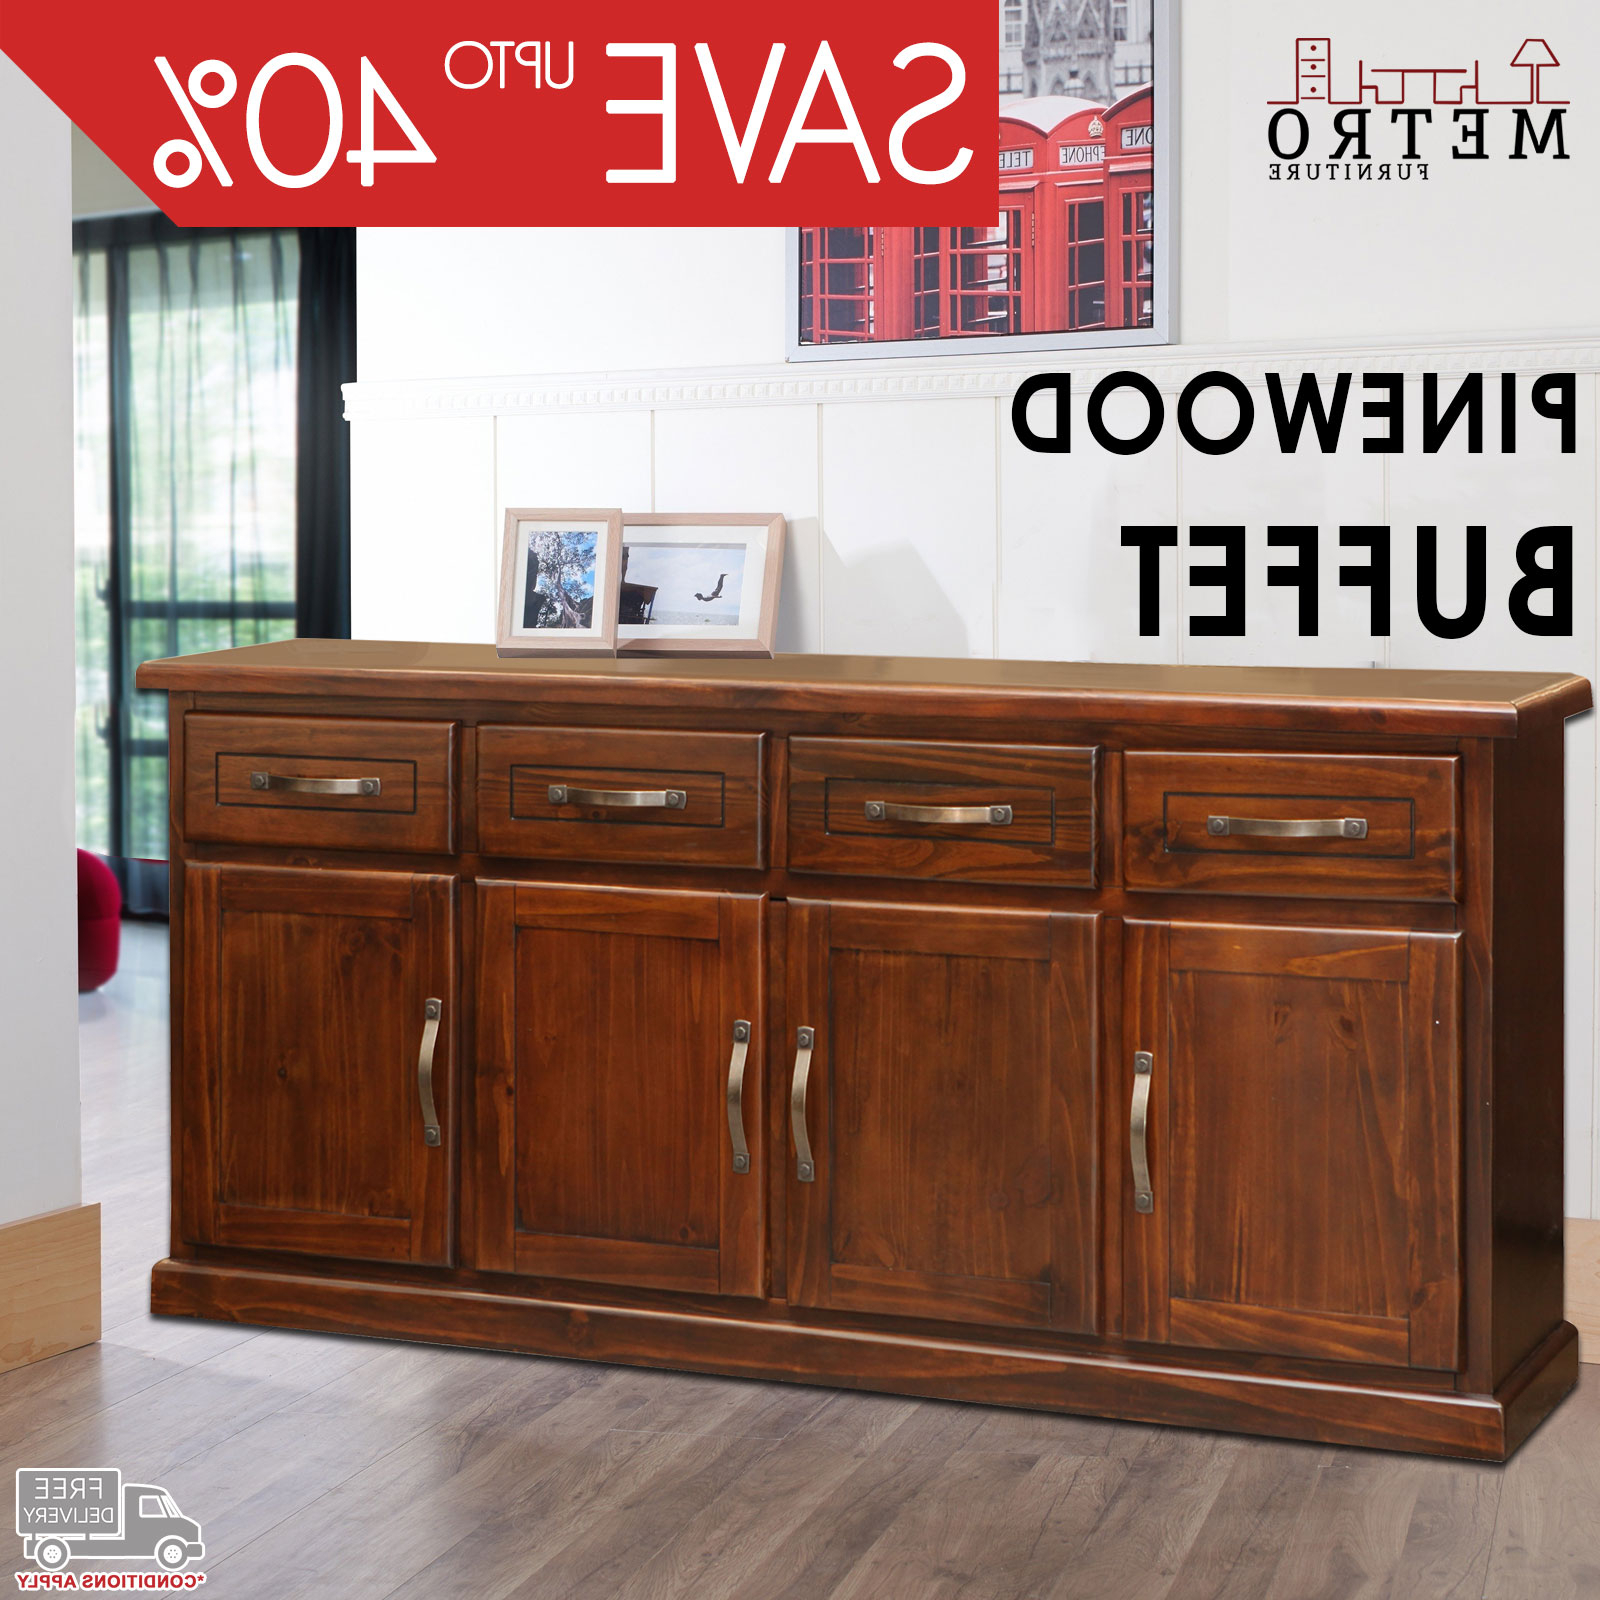 Favorite New Modern Traditional Buffet Sideboard Table With Cabinets Pertaining To Metro Sideboards (View 5 of 20)